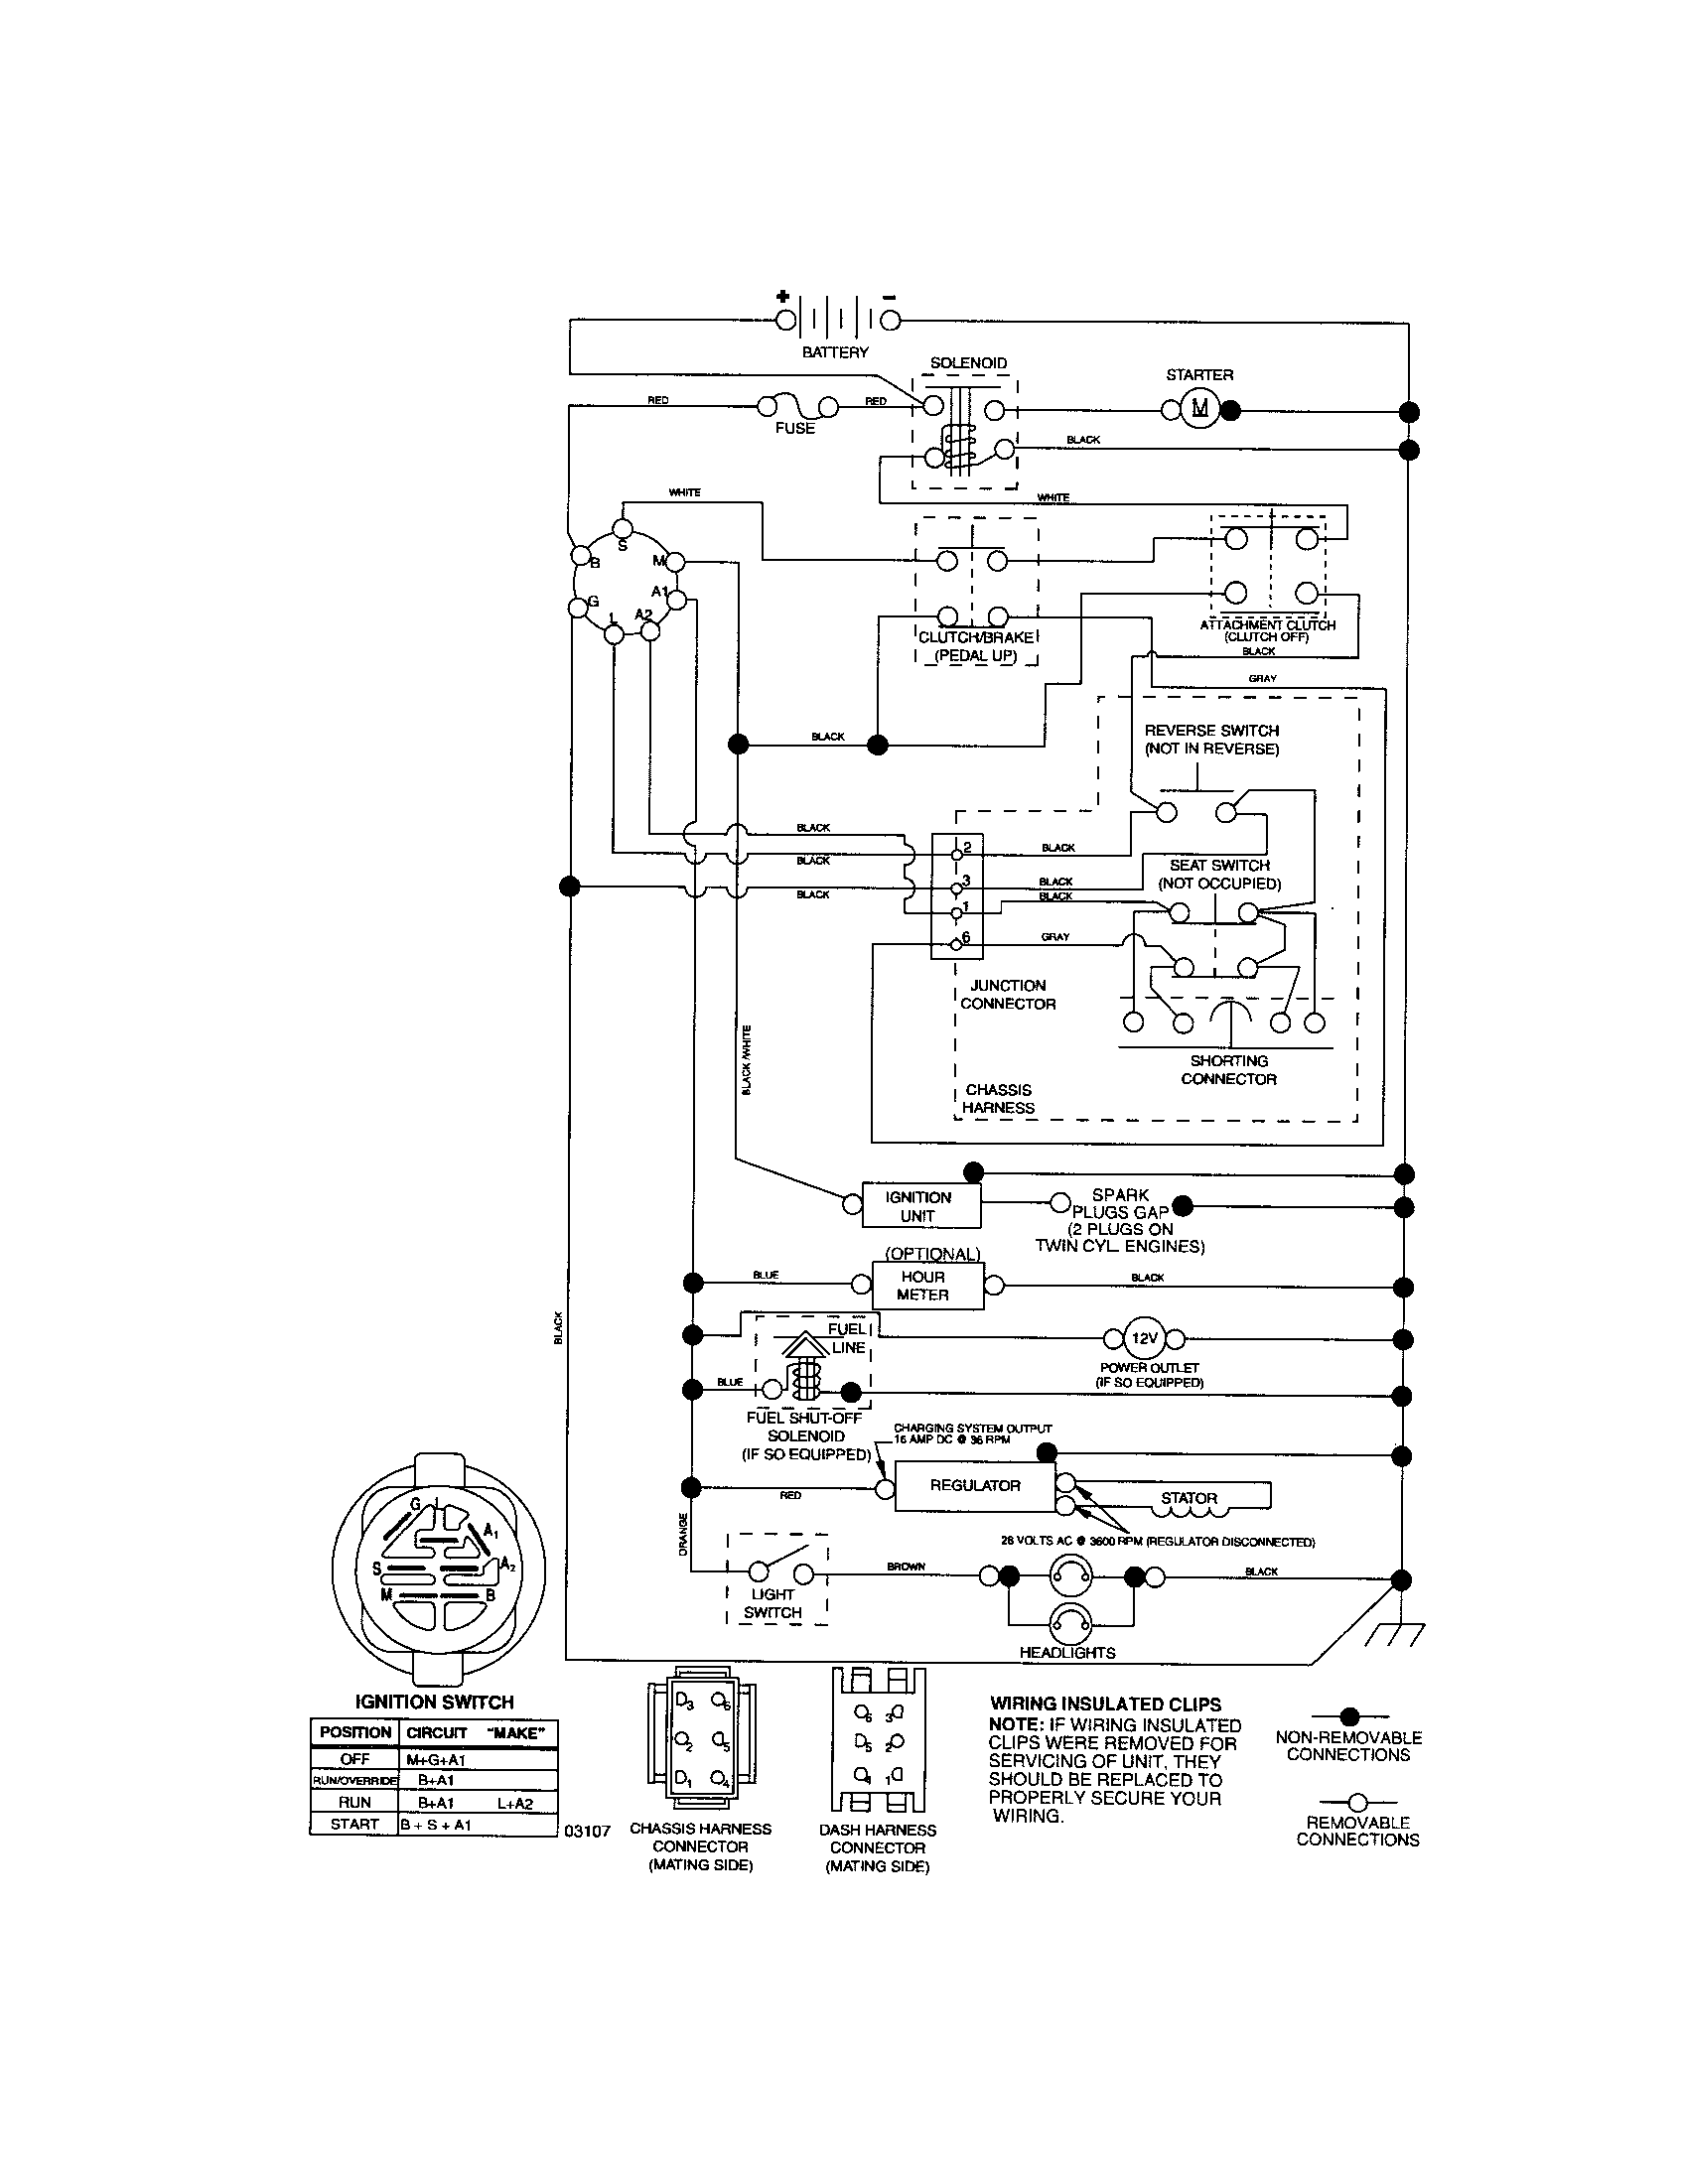 hight resolution of craftsman riding mower electrical diagram wiring diagram craftsman kohler 17 hp wiring diagram free download